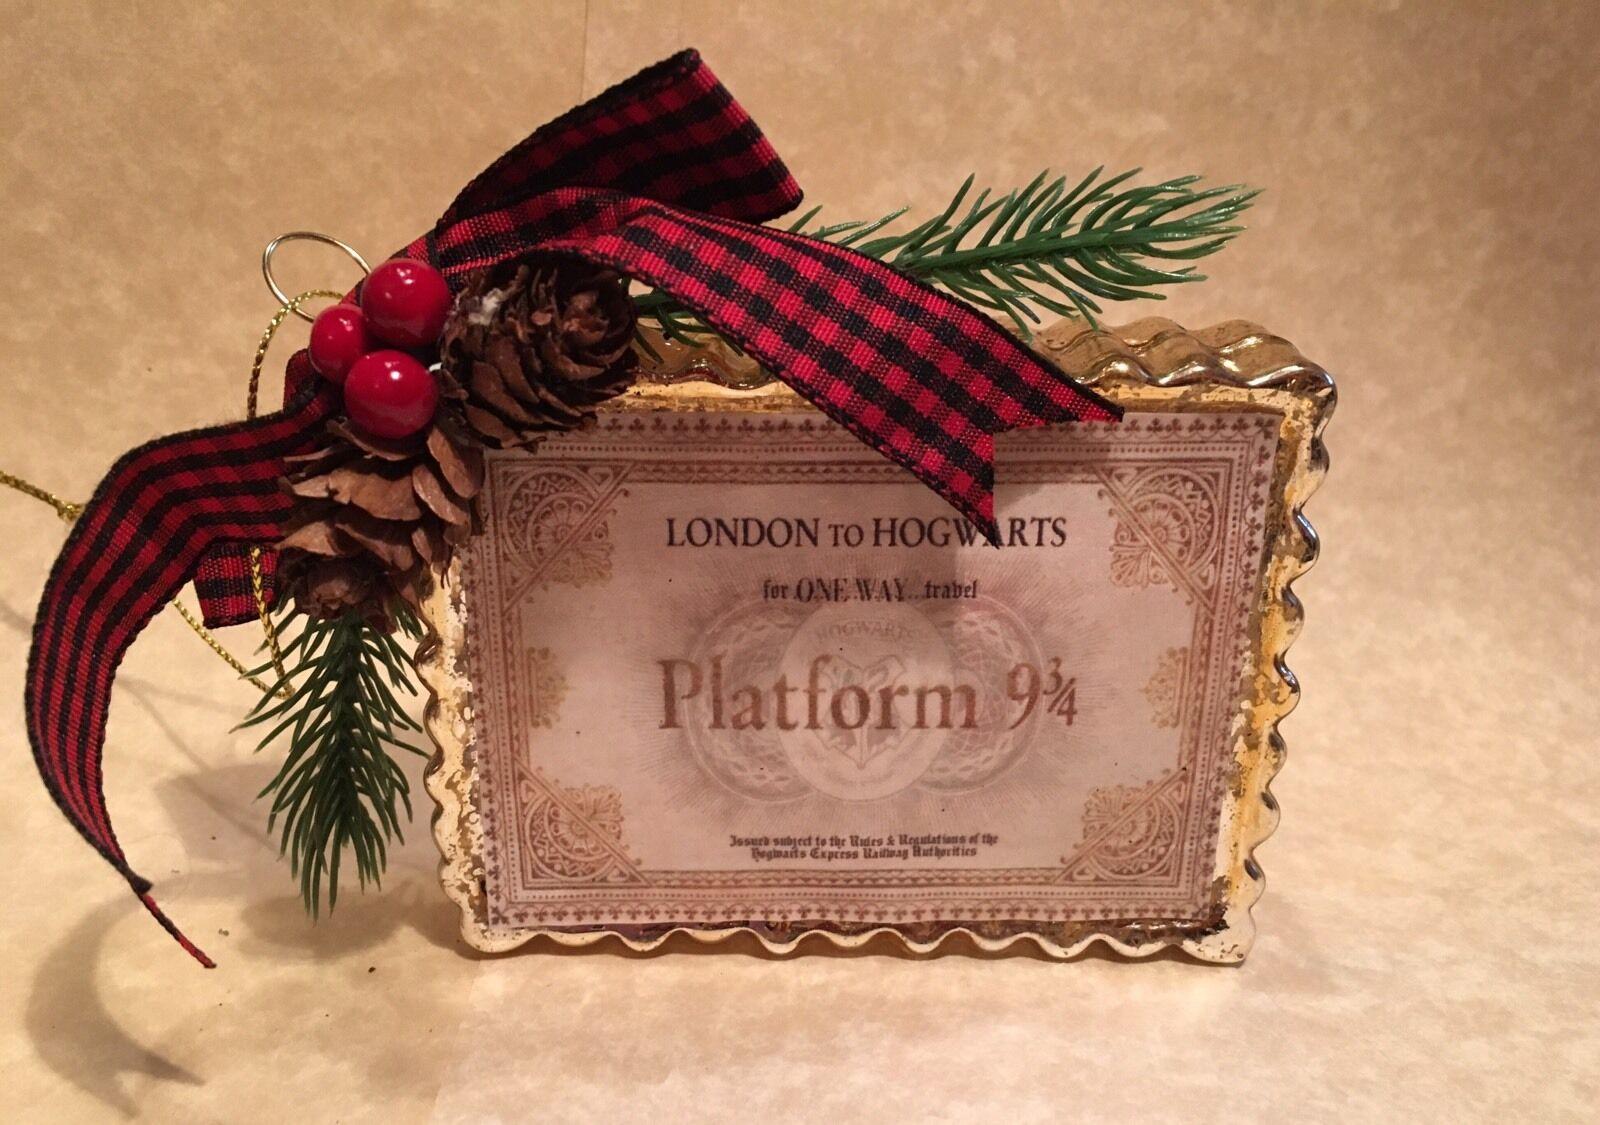 handmade hogwarts express ticket christmas ornament for harry potter fans gift 1 of 1only 2 available see more